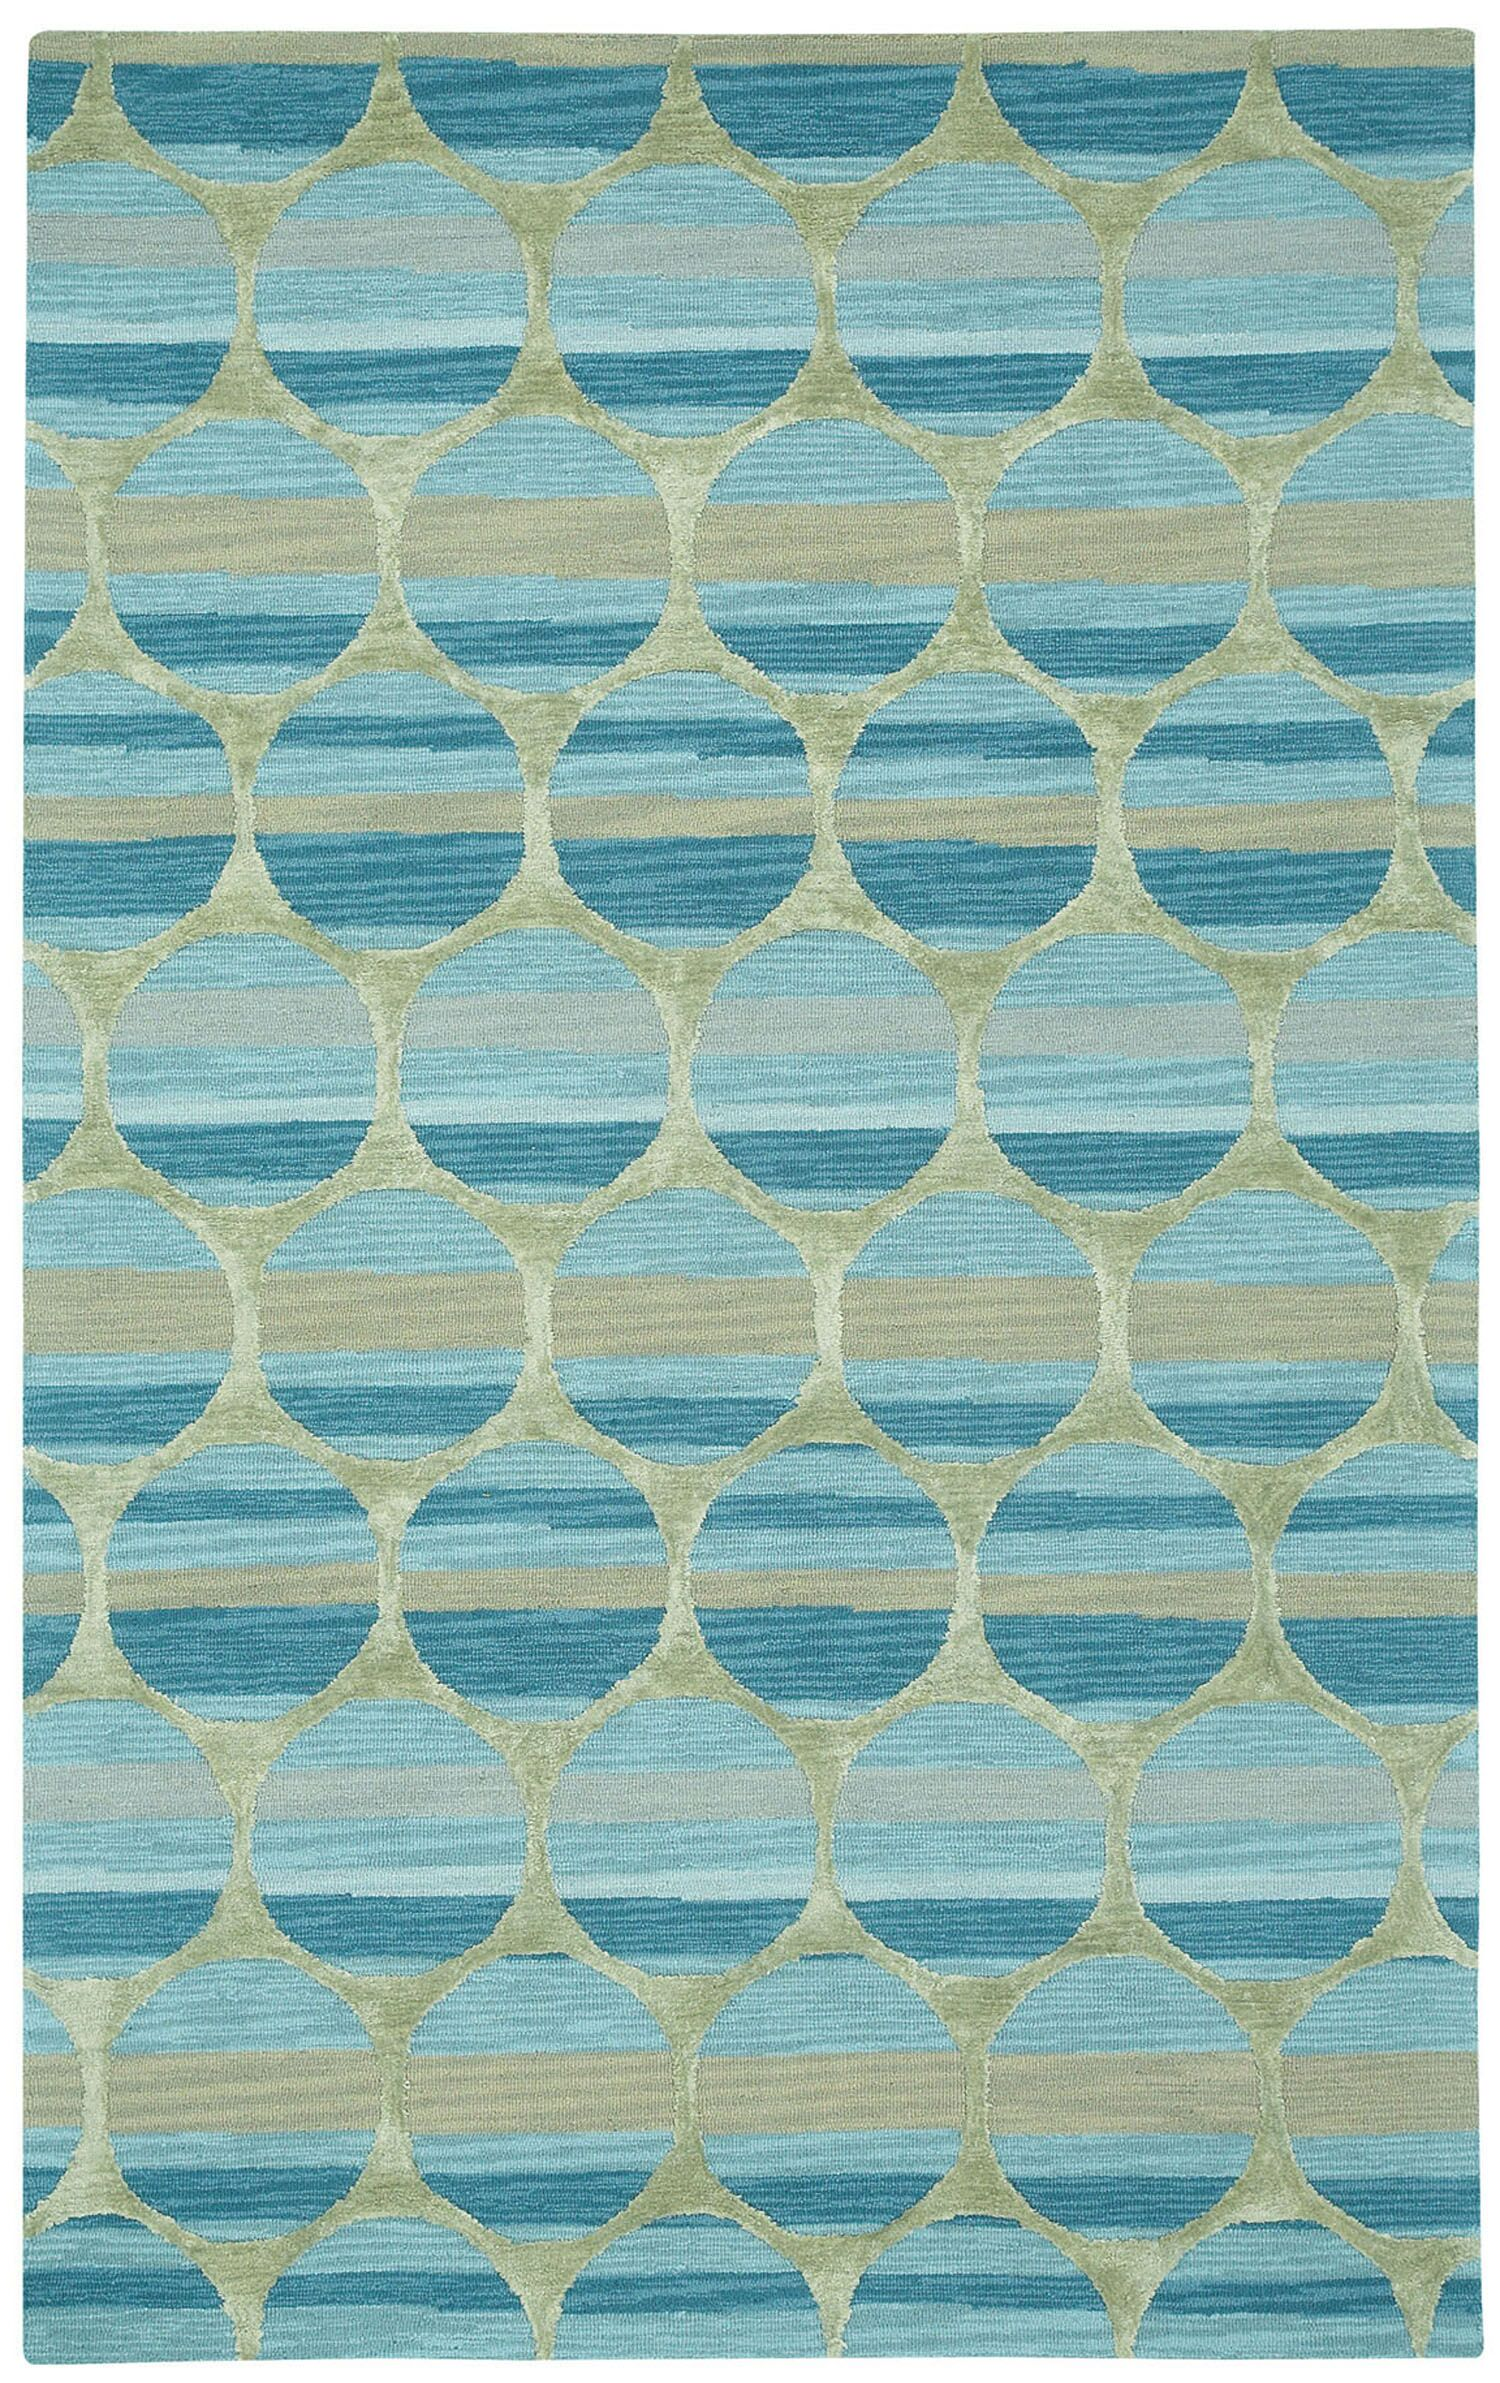 Bucine Blue Trellis Area Rug Rug Size: Rectangle 5' x 8'